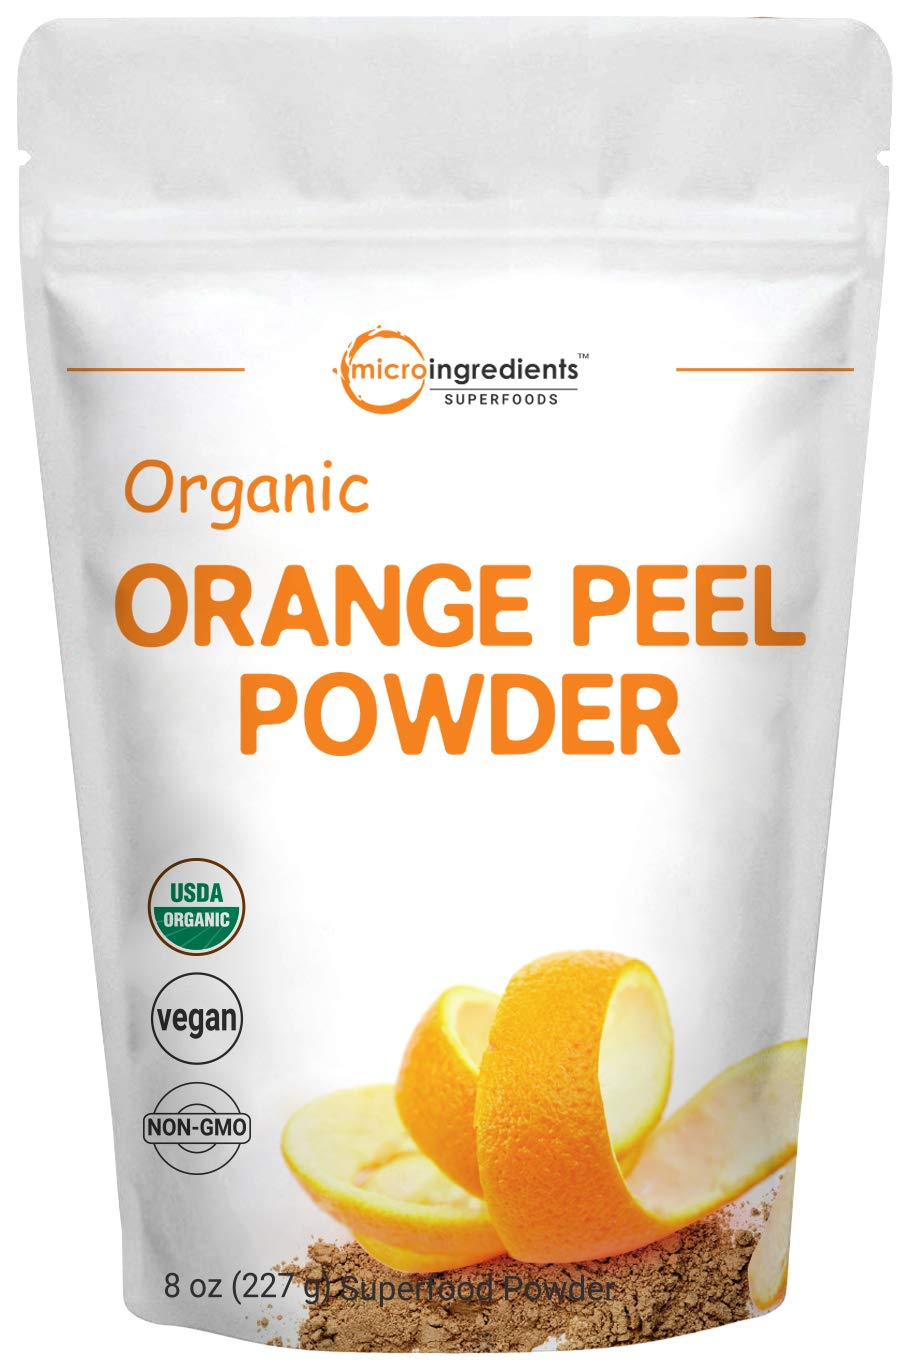 Organic Orange Peel Powder, 8 Ounce, Rich in Antioxidants and Immune Vitamin C for Immune System Booster, Best Flavor for Smoothie, Drinks, Coffee and Baking, No GMOs and Vegan Friendly